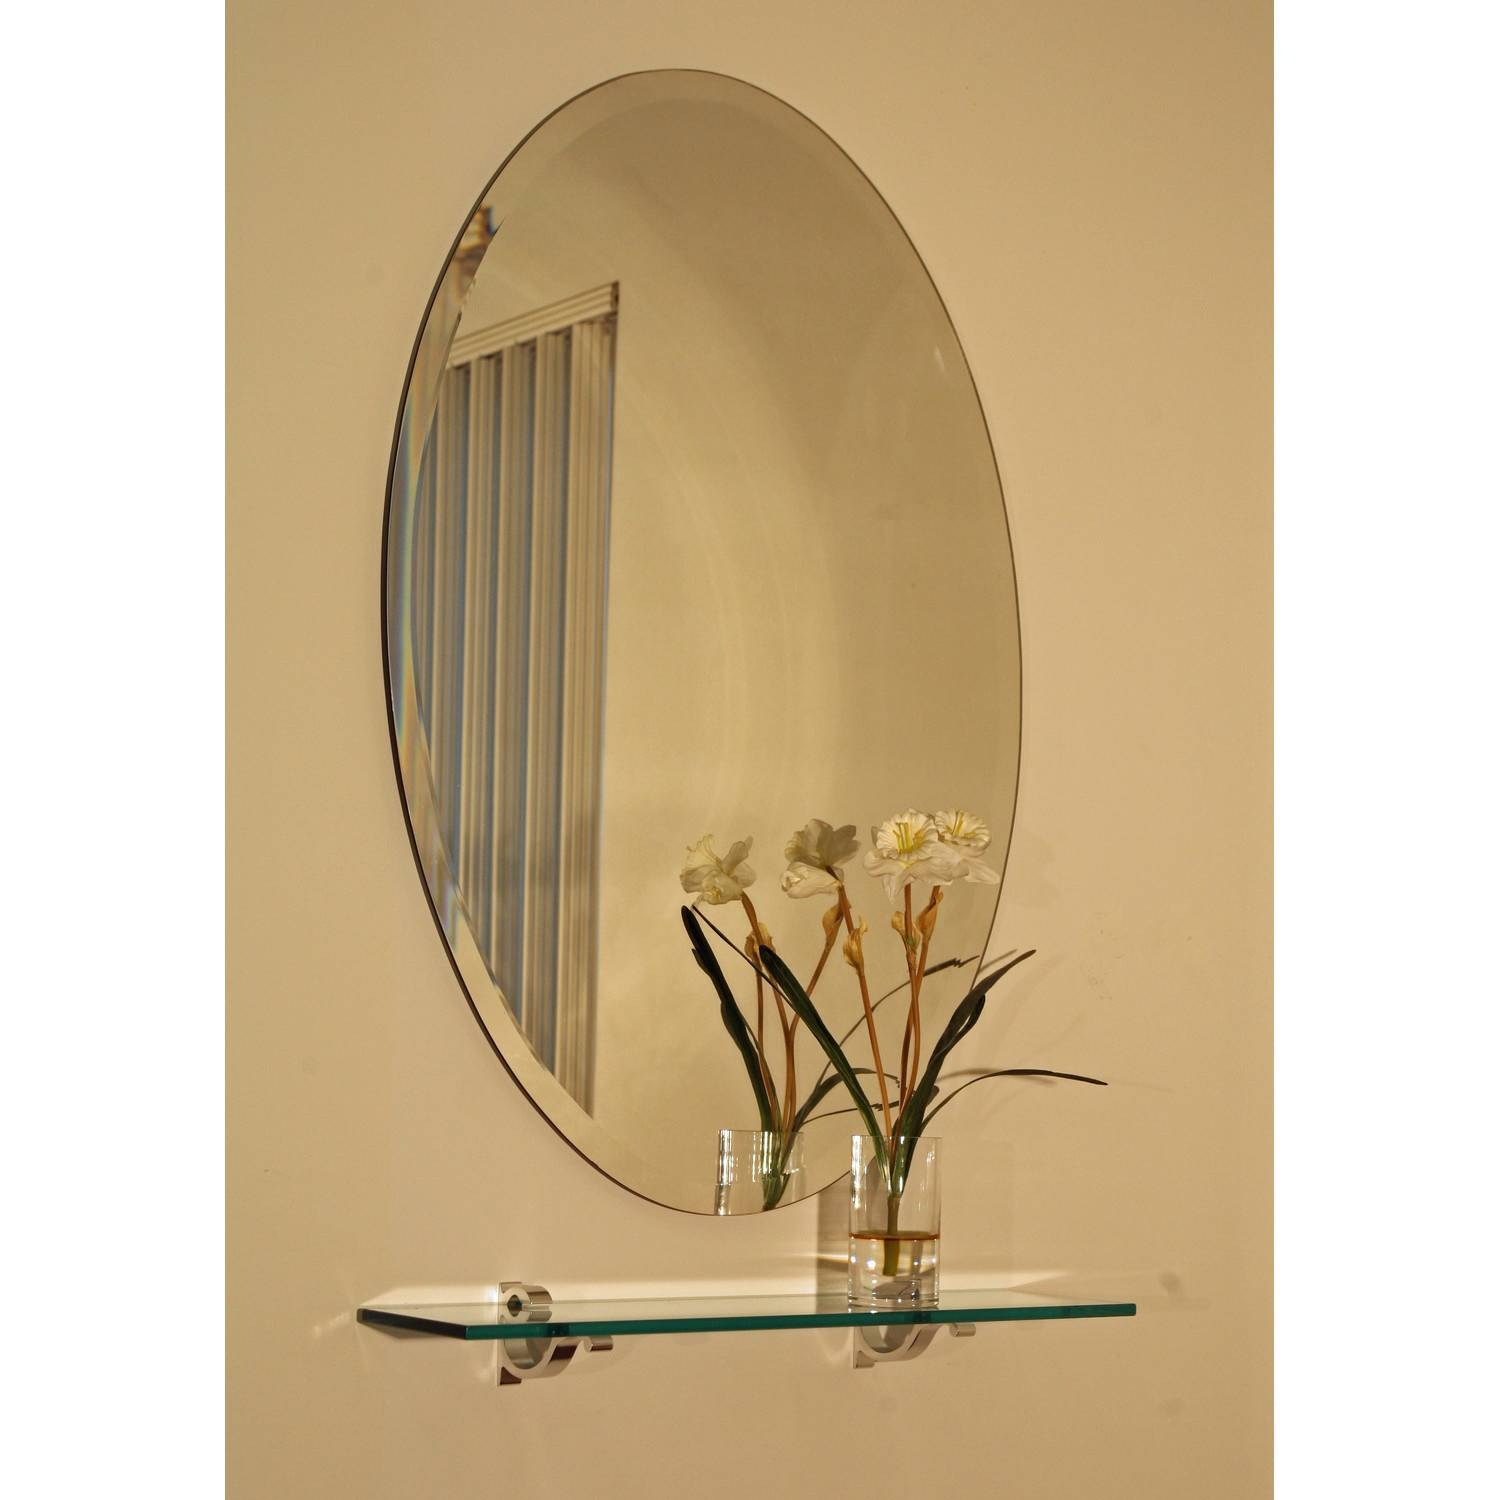 Regency 24 X 36 Oval Beveled Edge Mirror Spancraft Wall Mirror With Regard To Bevelled Oval Mirrors (View 10 of 15)